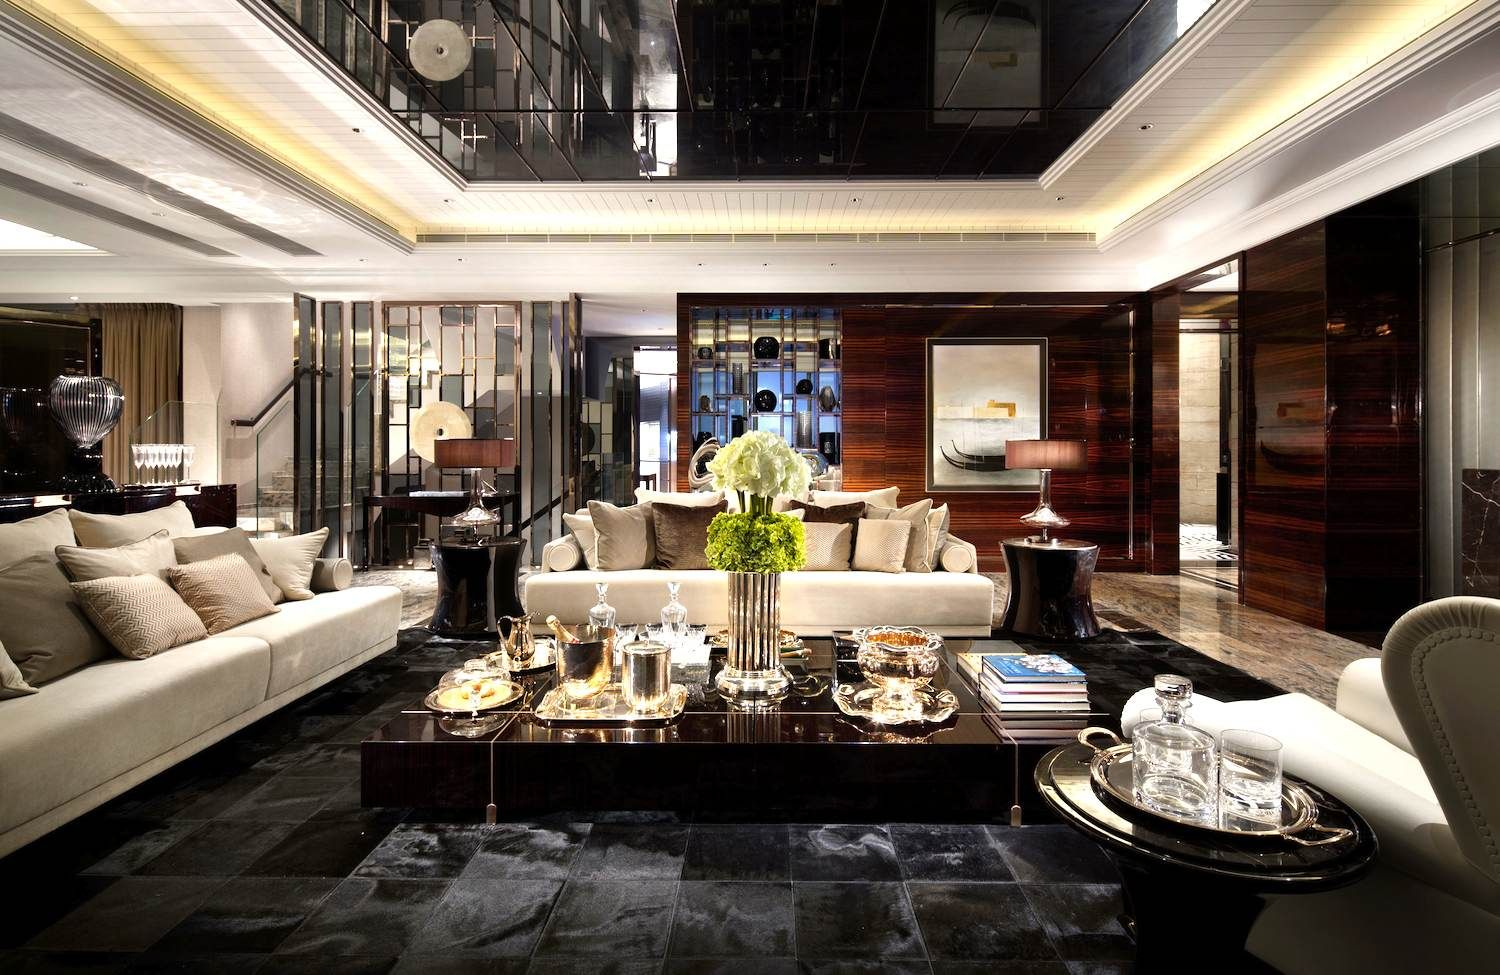 LUXURY SITTING ROOMS RICH FAMOUS